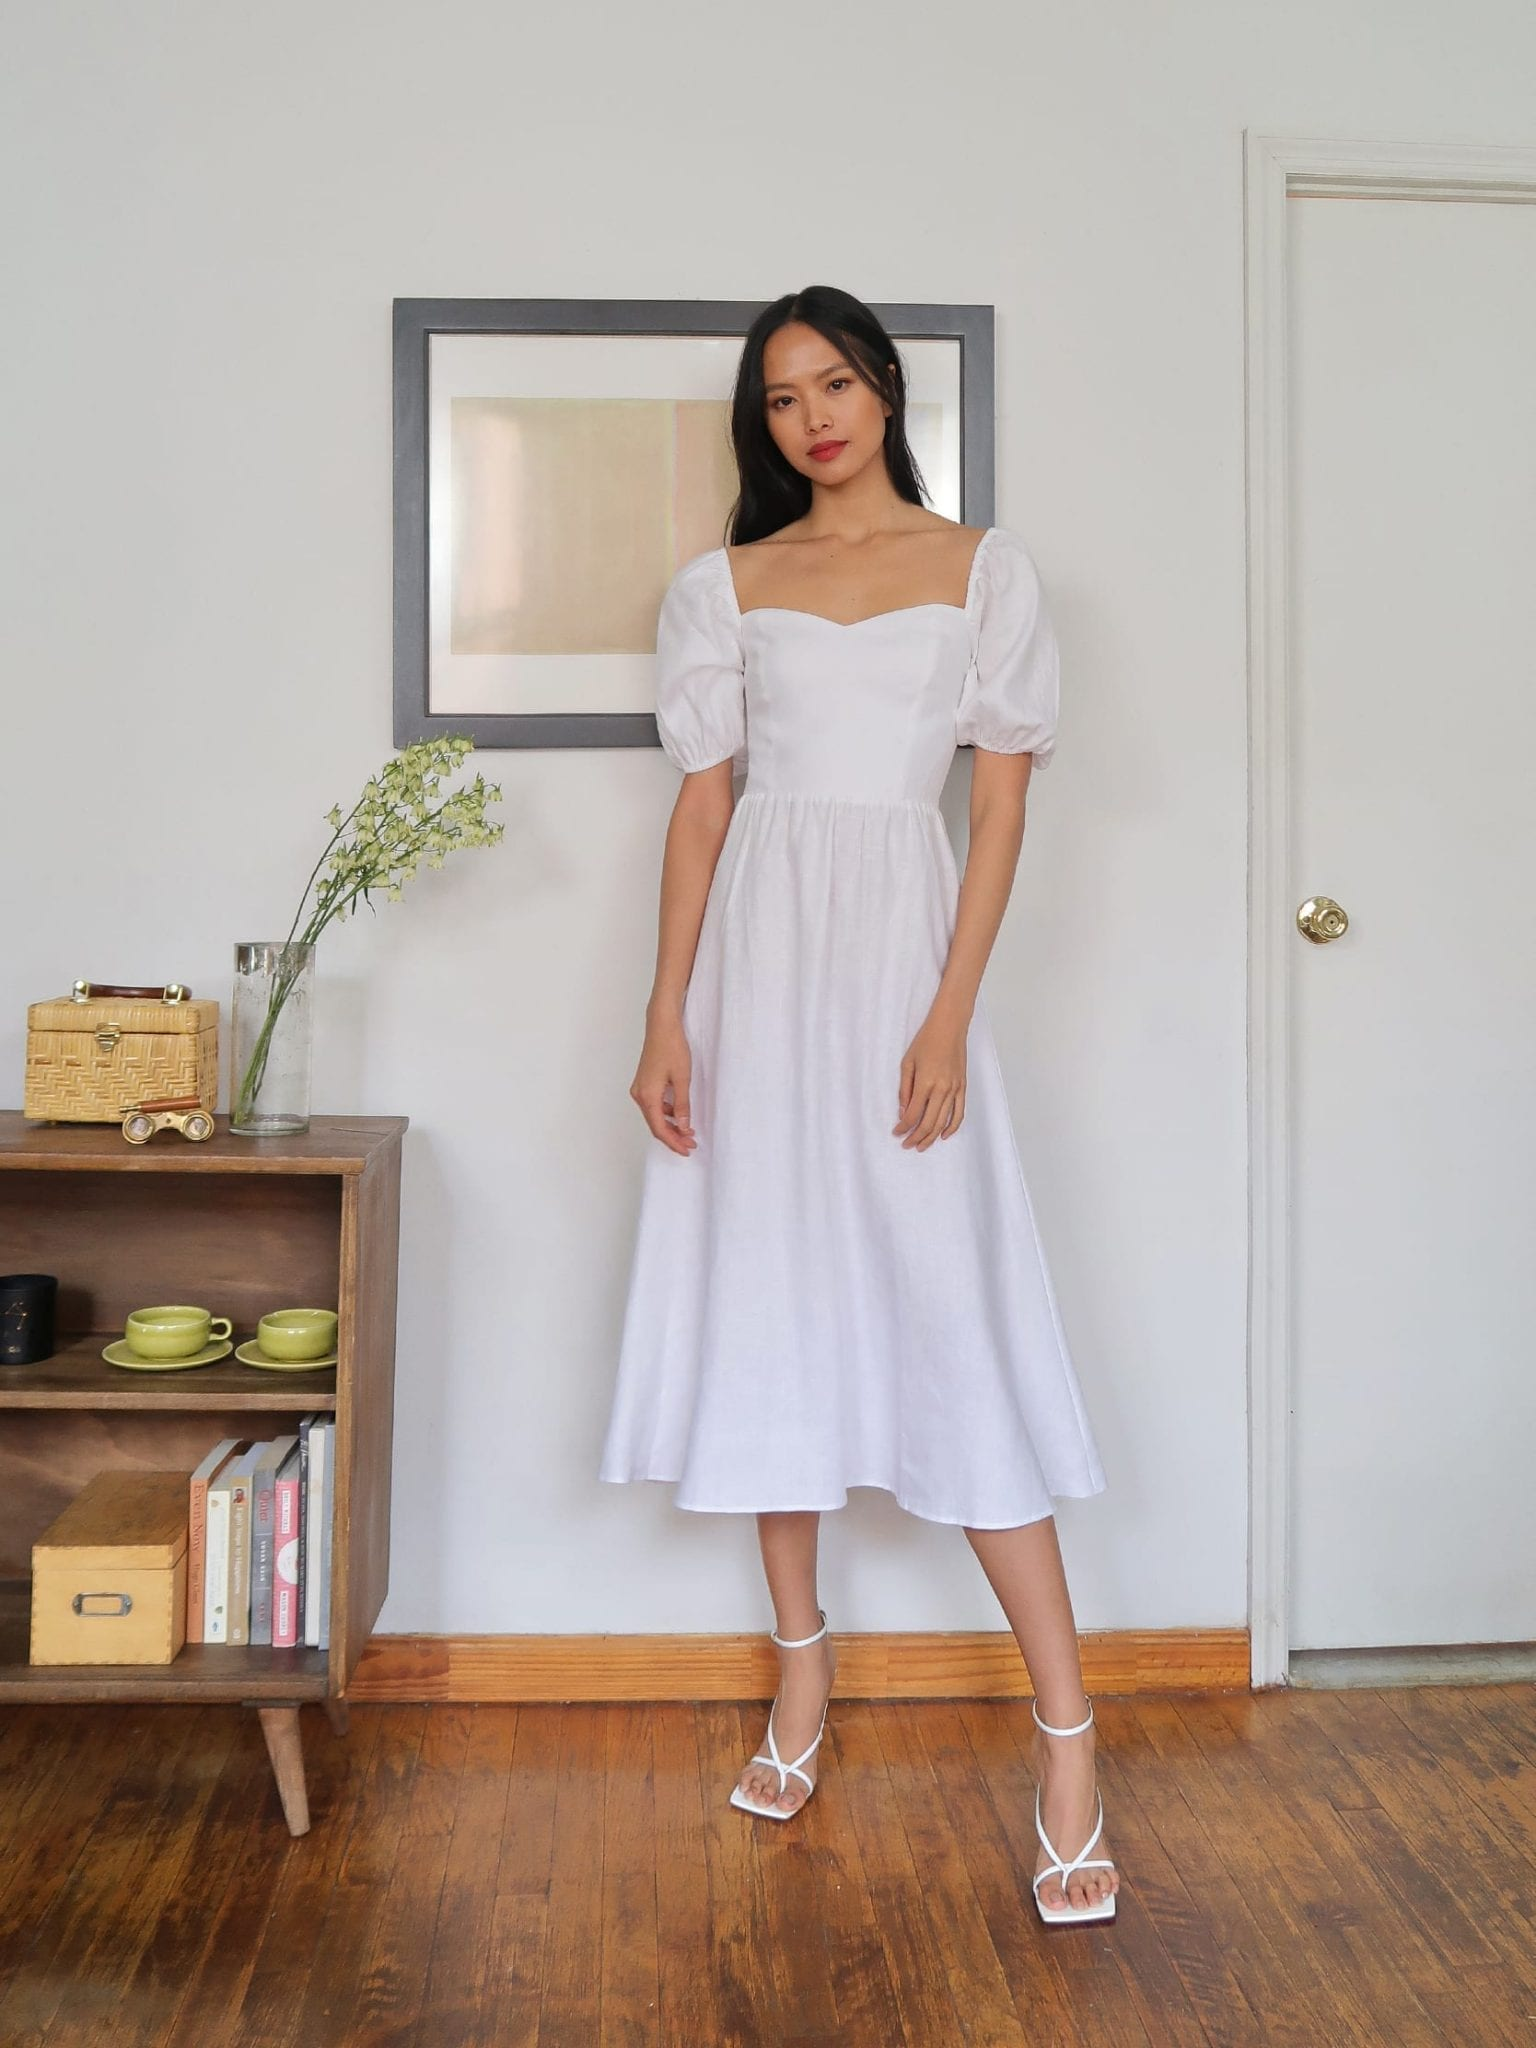 THEREFORMATION Rhode Dress